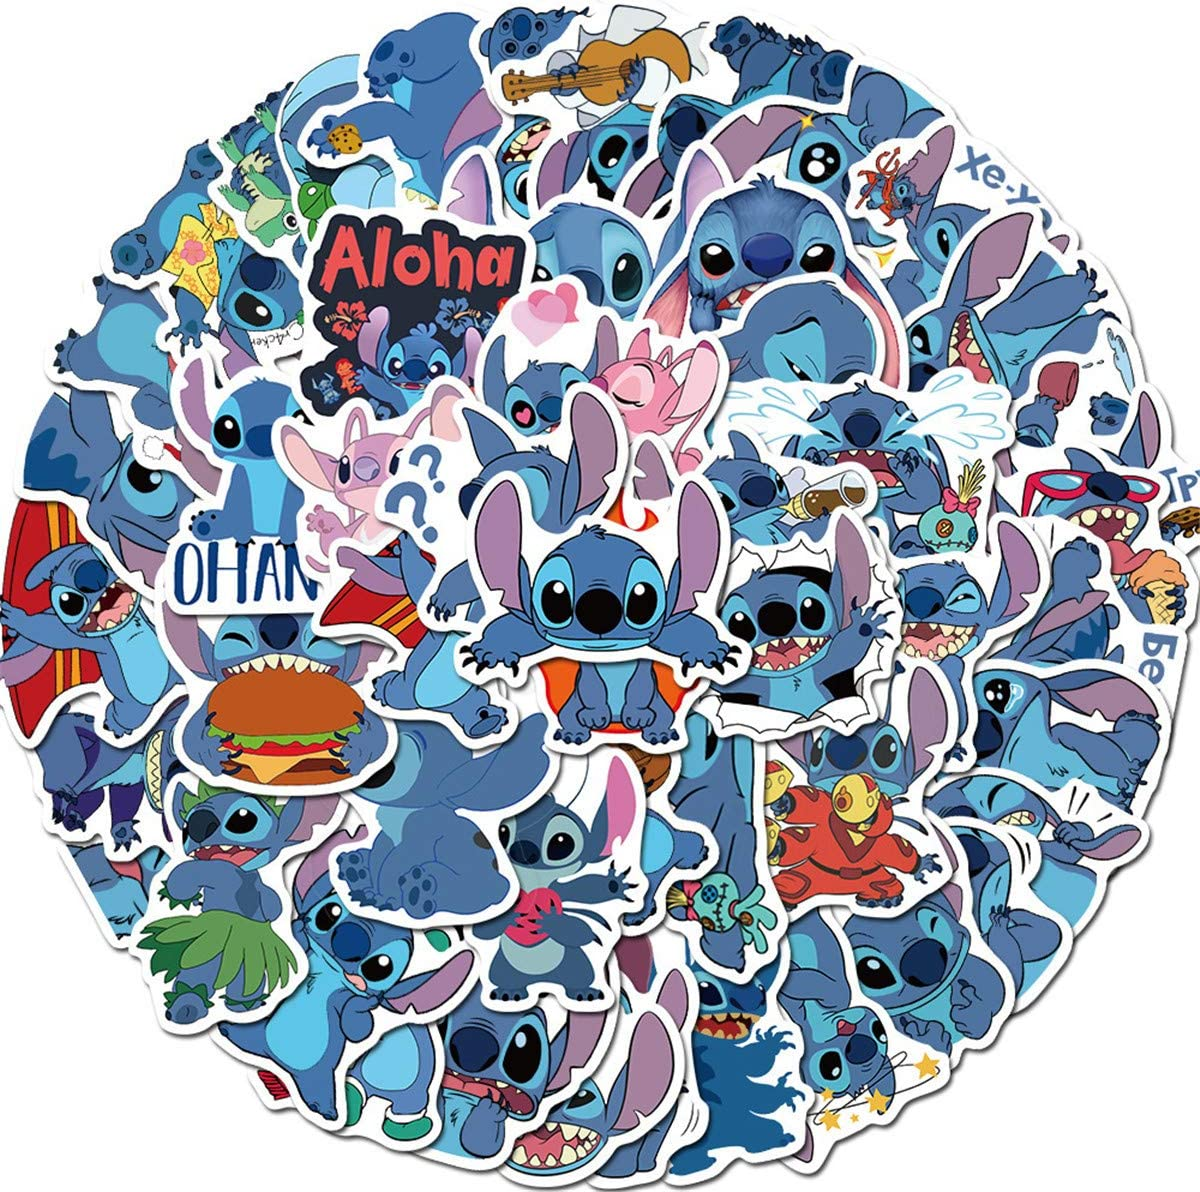 50pcs Cartoon Lilo & Stitch Laptop Vinyl Stickers car sticker For Snowboard Motorcycle Bicycle Phone Computer DIY Keyboard Car Window Bumper Wall Luggage Decal Graffiti Patches (Cartoon Lilo & Stitch)